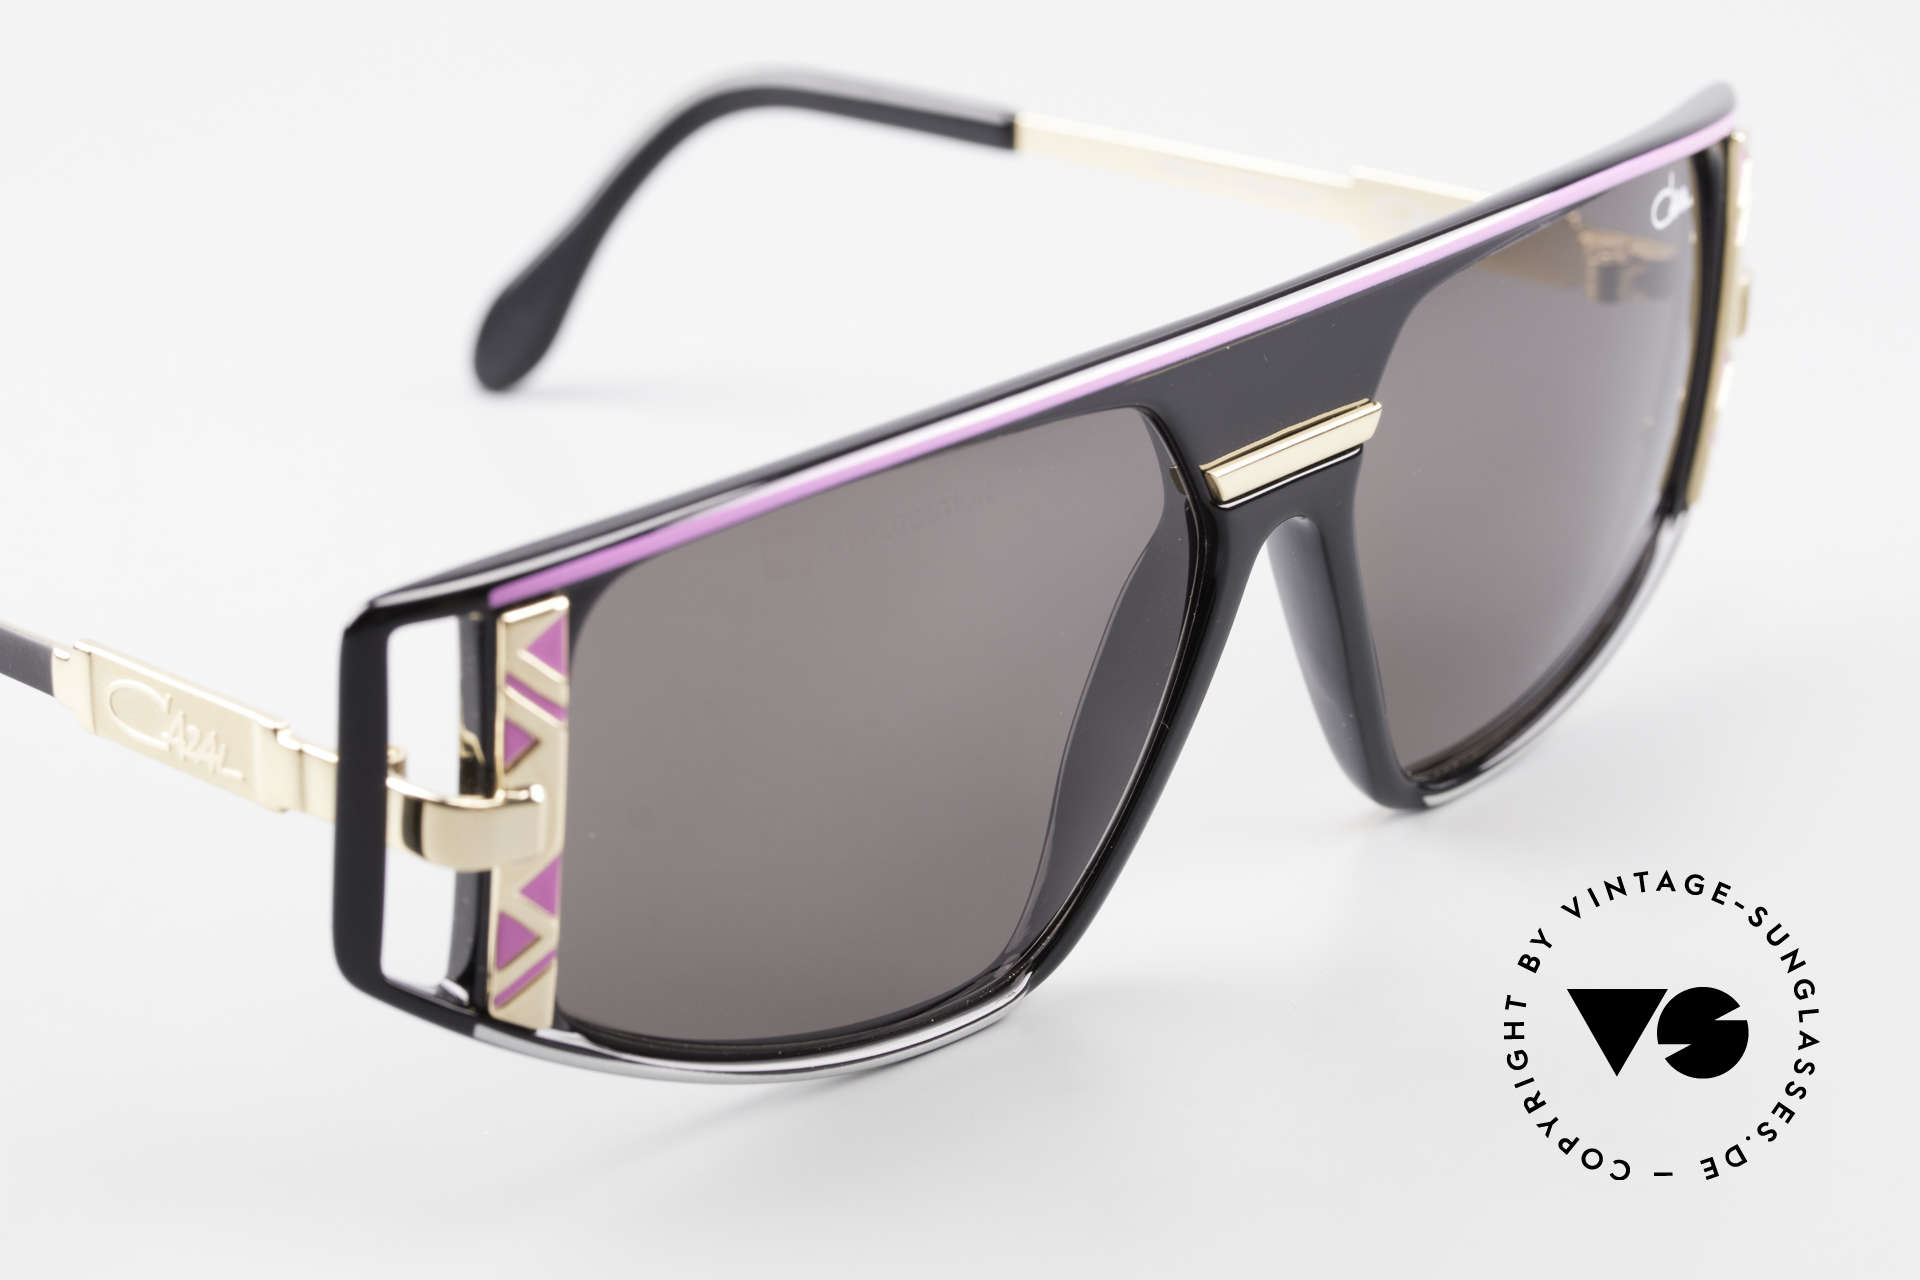 Cazal 874 90's Shades Lady Gaga Style, new old stock (like all our vintage CAZAL eyewear), Made for Men and Women